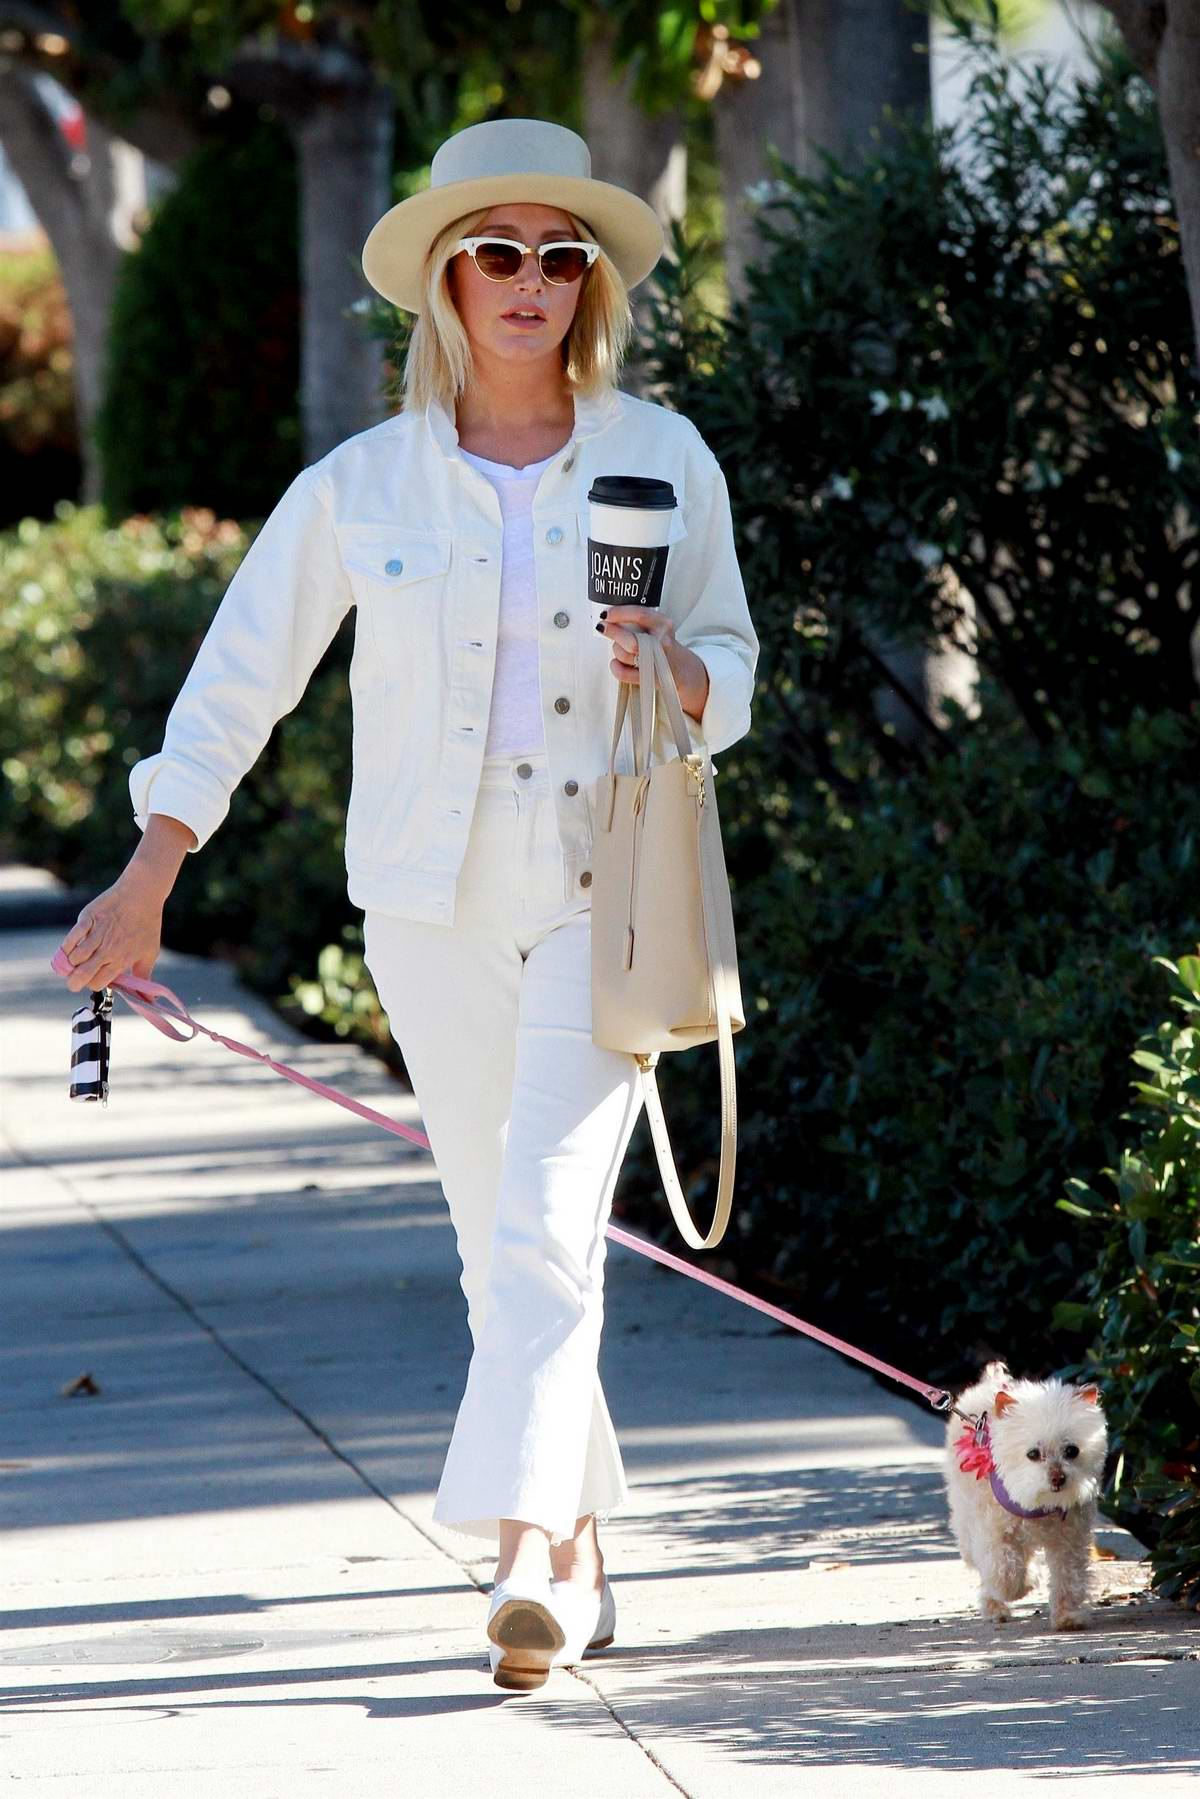 Ashley Tisdale steps out in all white as she runs errands with her dog Maui in Studio City, Los Angeles